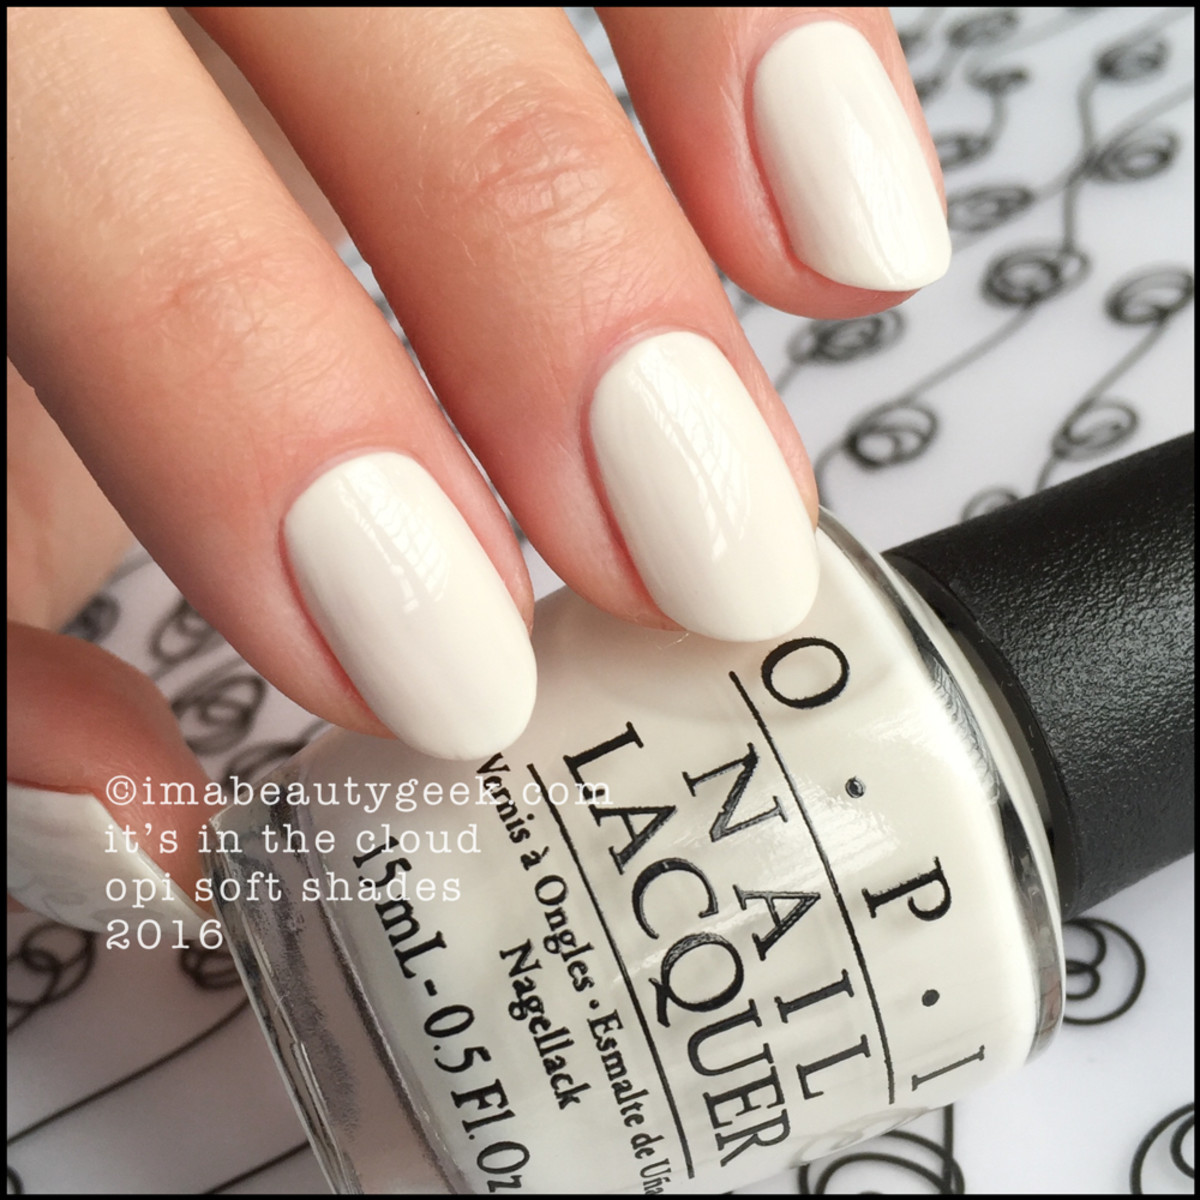 OPI Its In the Clouds_OPI Soft Shades 2016 Swatches Review